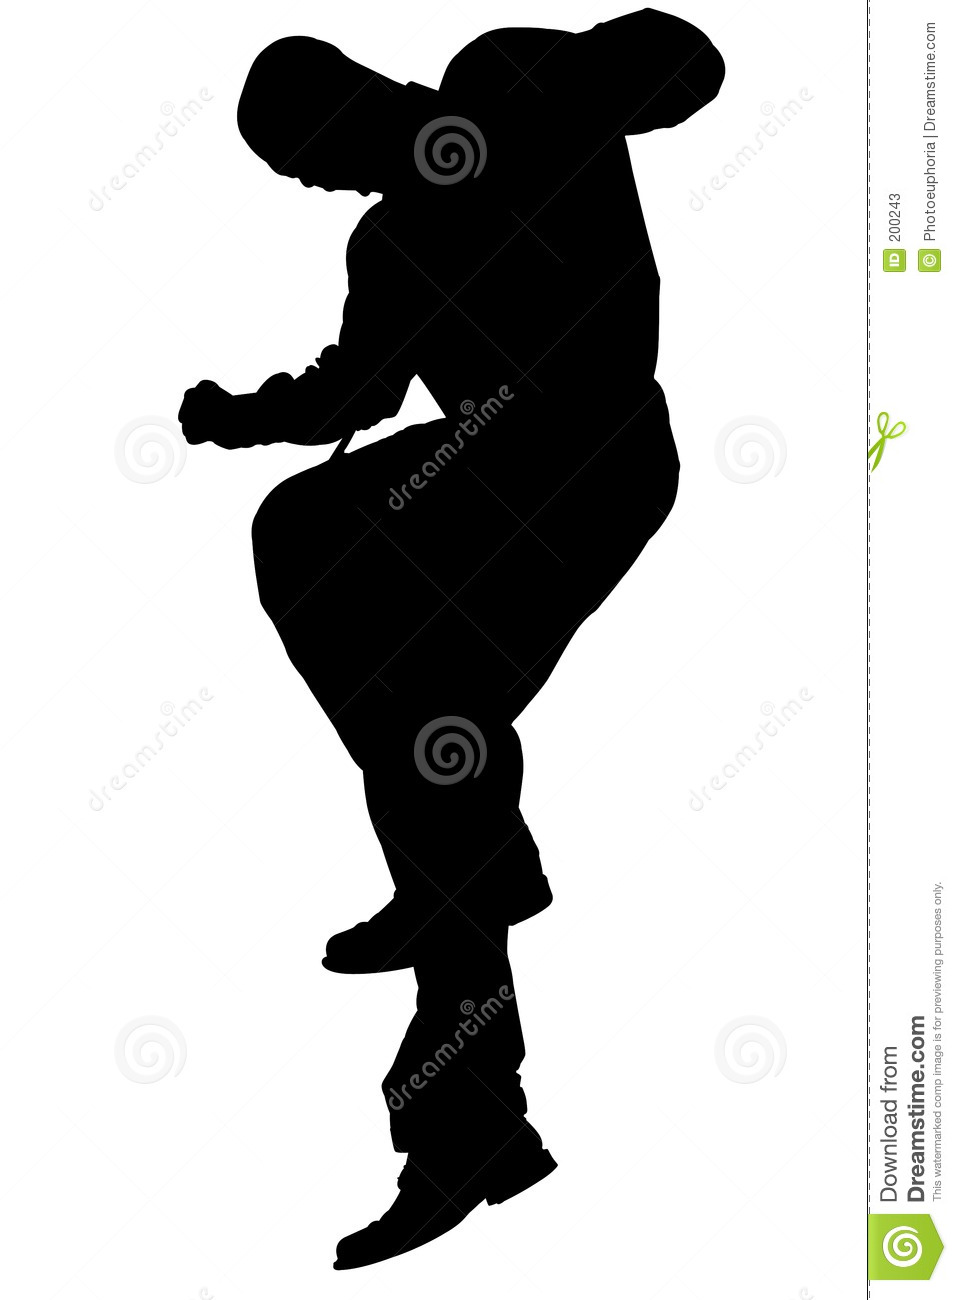 Silhouette With Clipping Path of Man Jumping